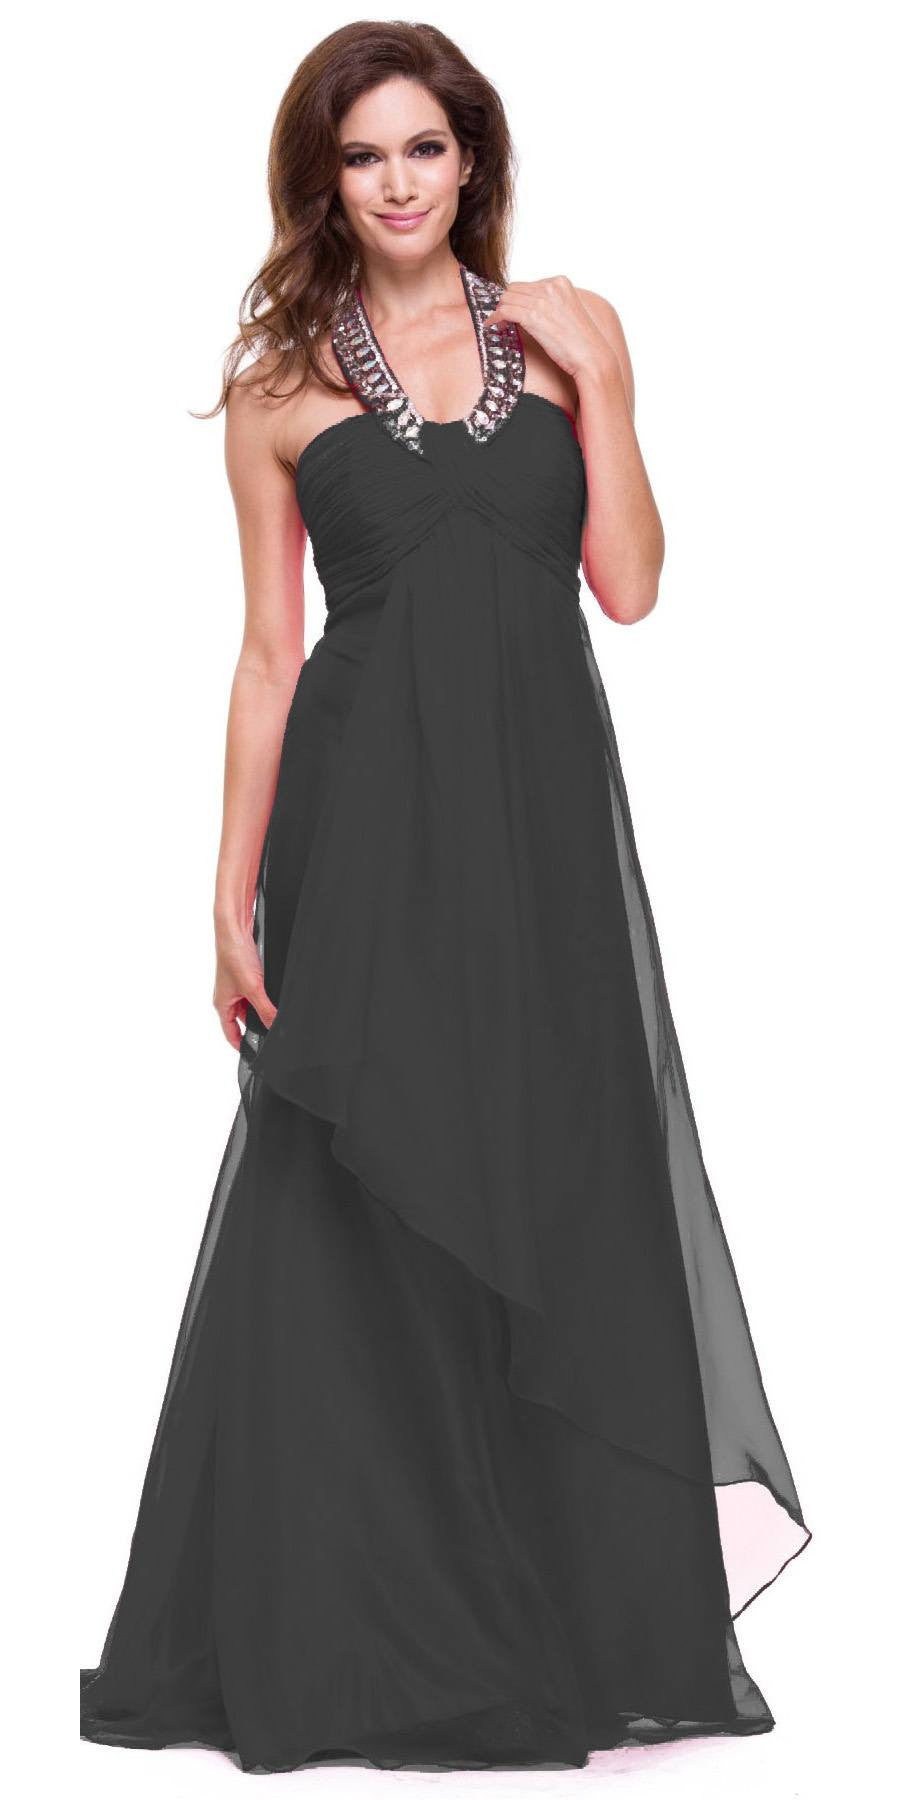 Black Halter Dress Corporate Event Long Soft Chiffon Empire Waist